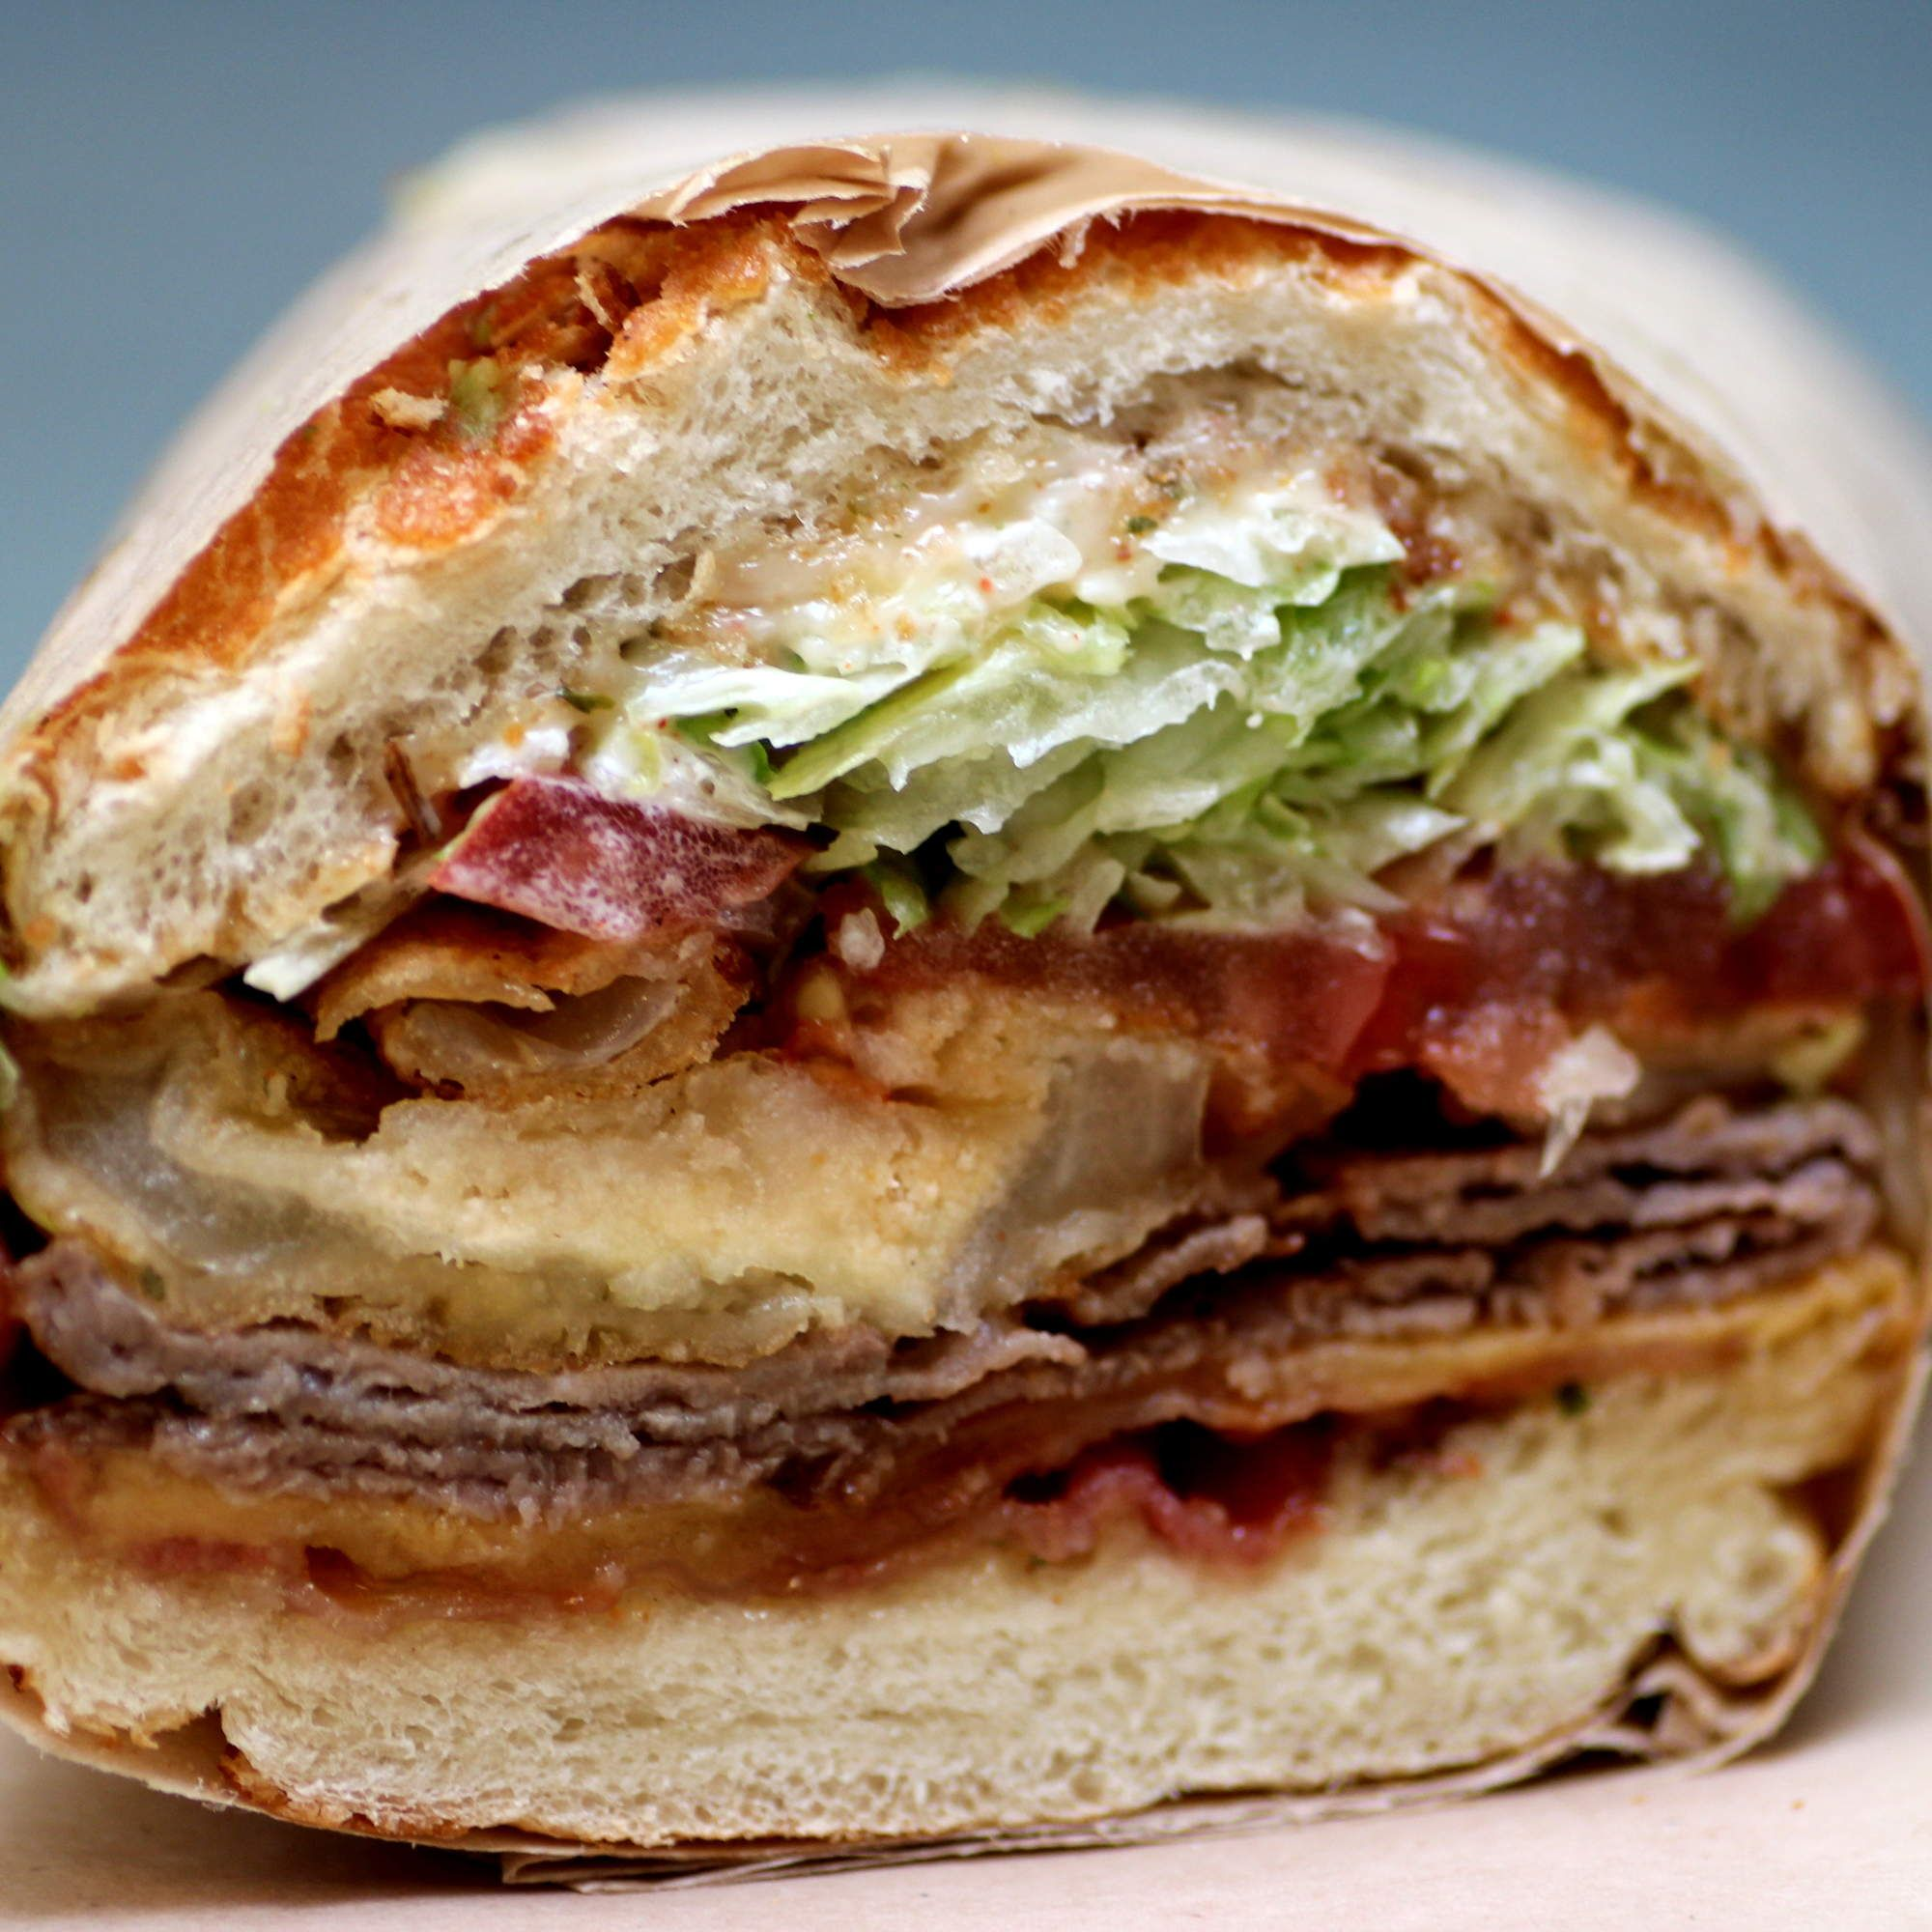 The Best 50 Sandwiches On Ike S Secret Menu Food Experiences Eat Food